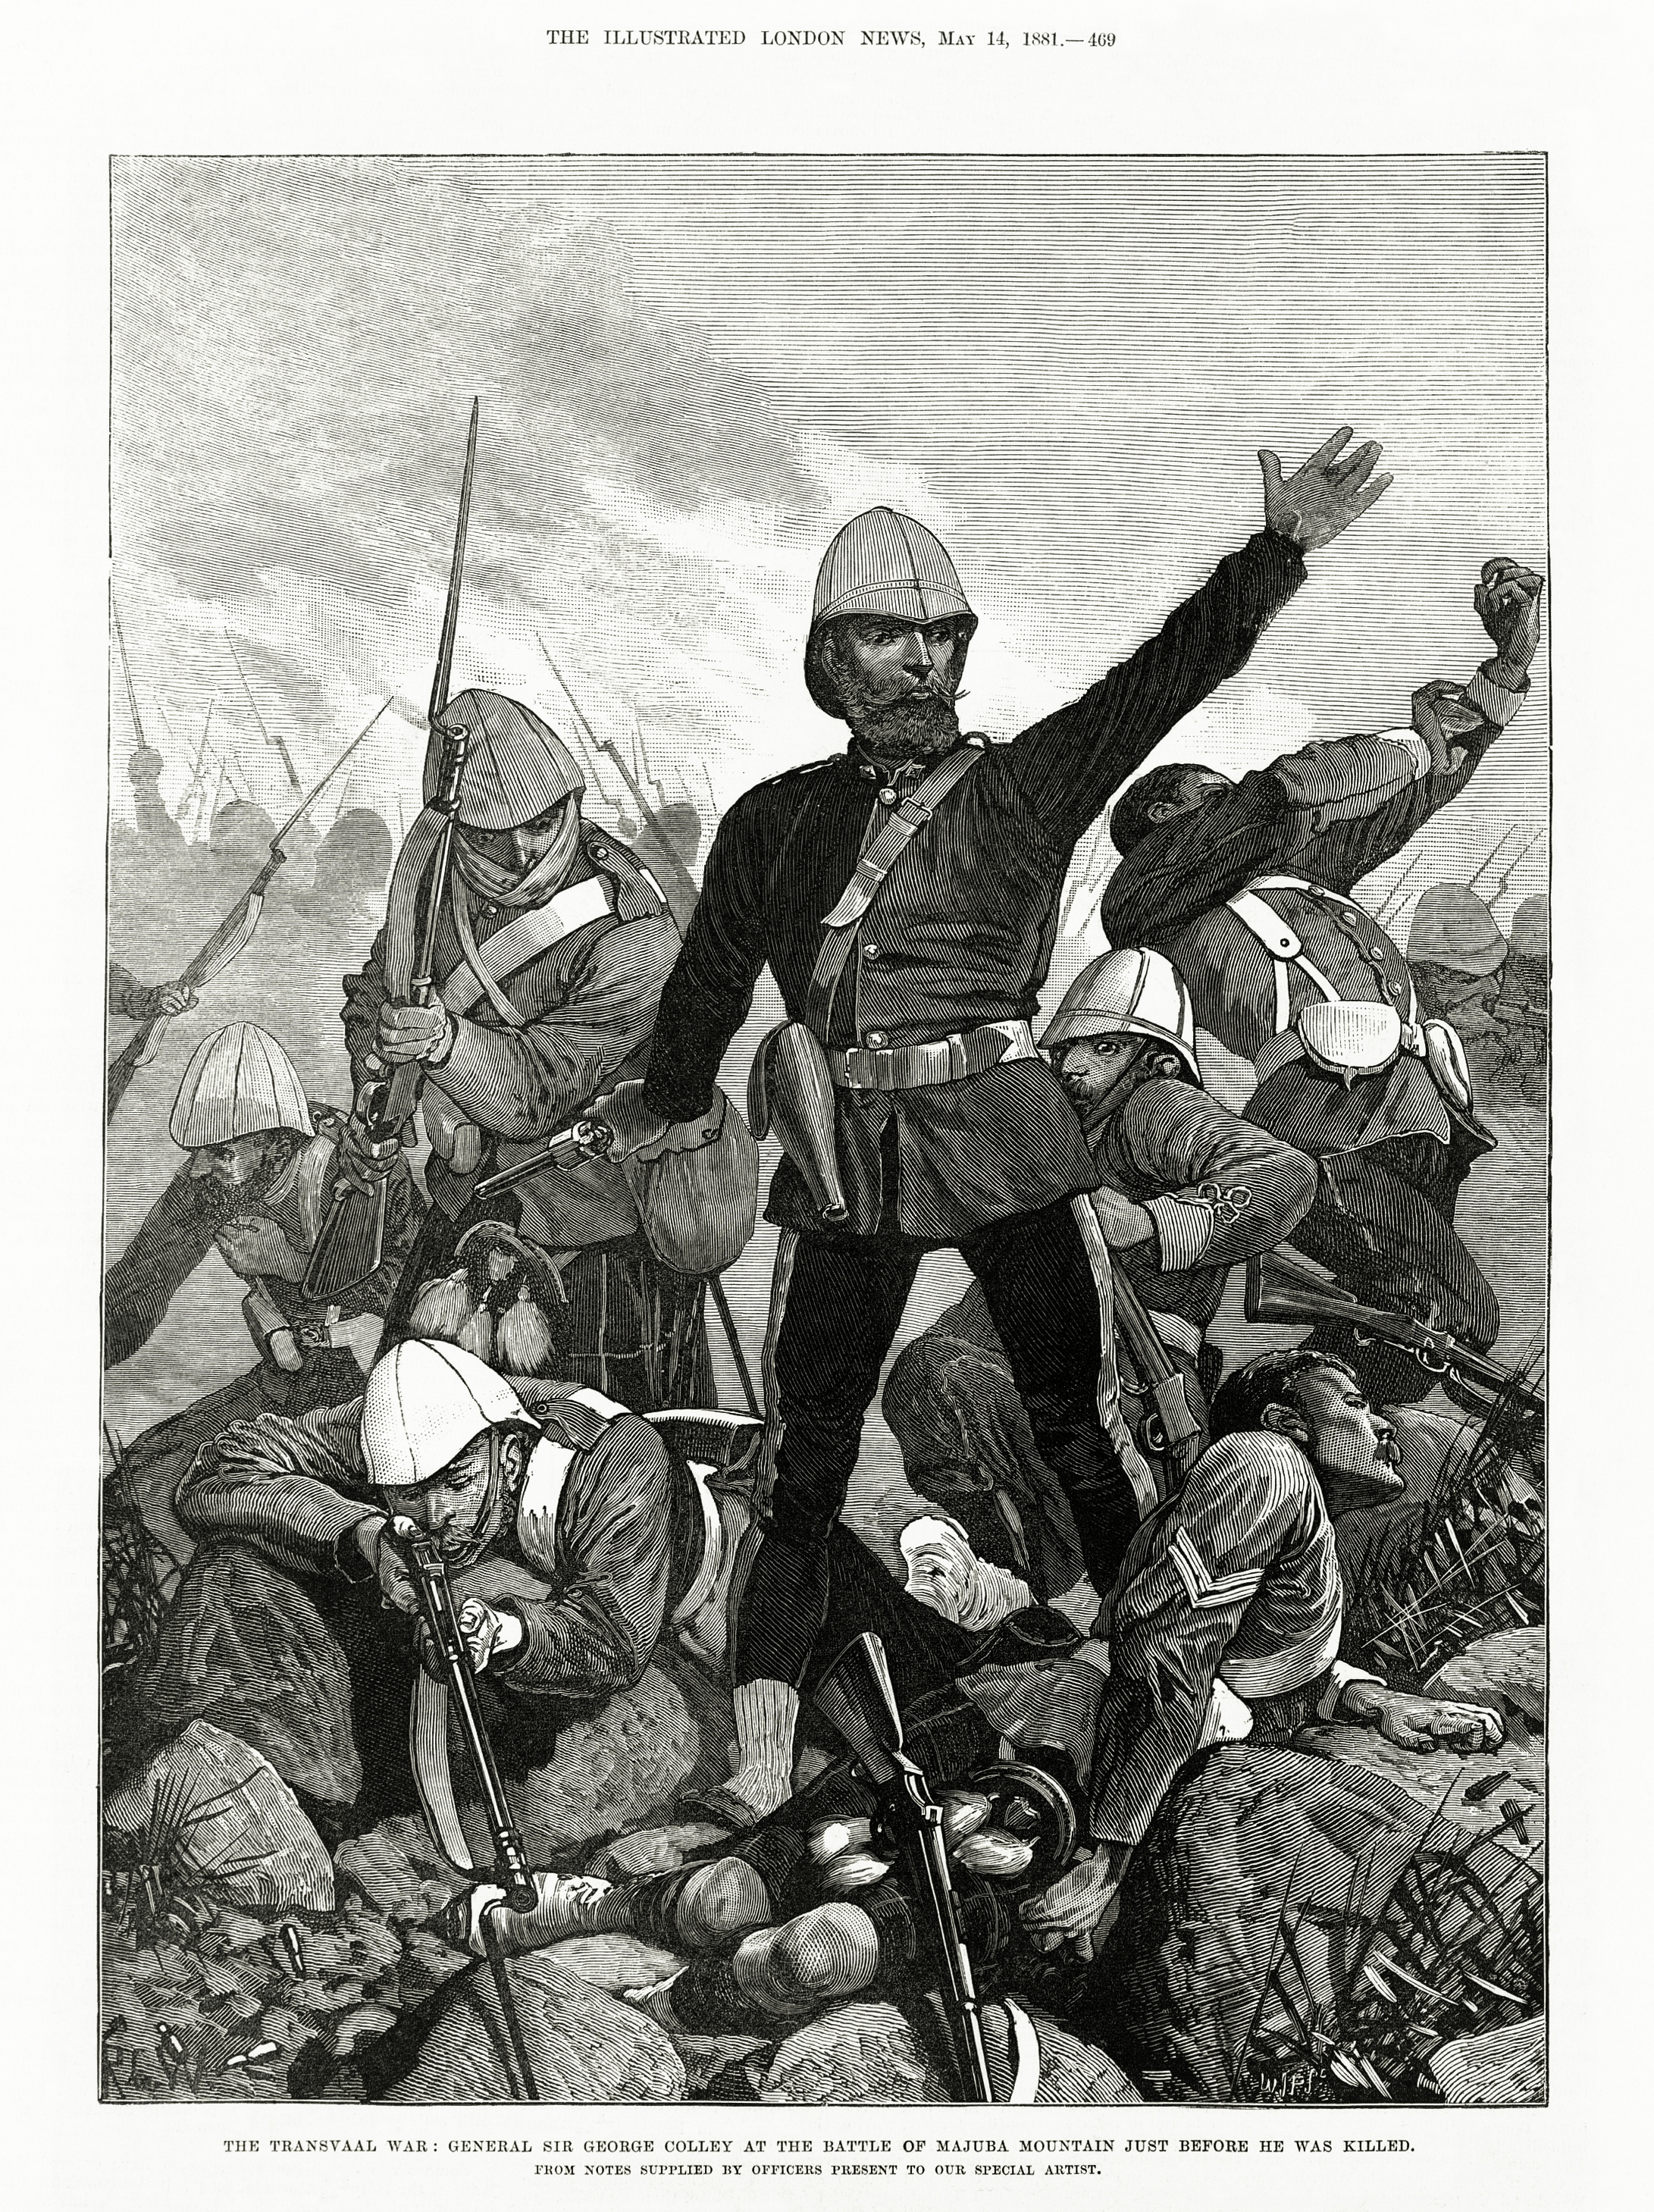 Melton_Prior_-_Illustrated_London_News_-_The_Transvaal_War_-_General_Sir_George_Colley_at_the_Battle_of_Majuba_Mountain_Just_Before_He_Was_Killed.jpg